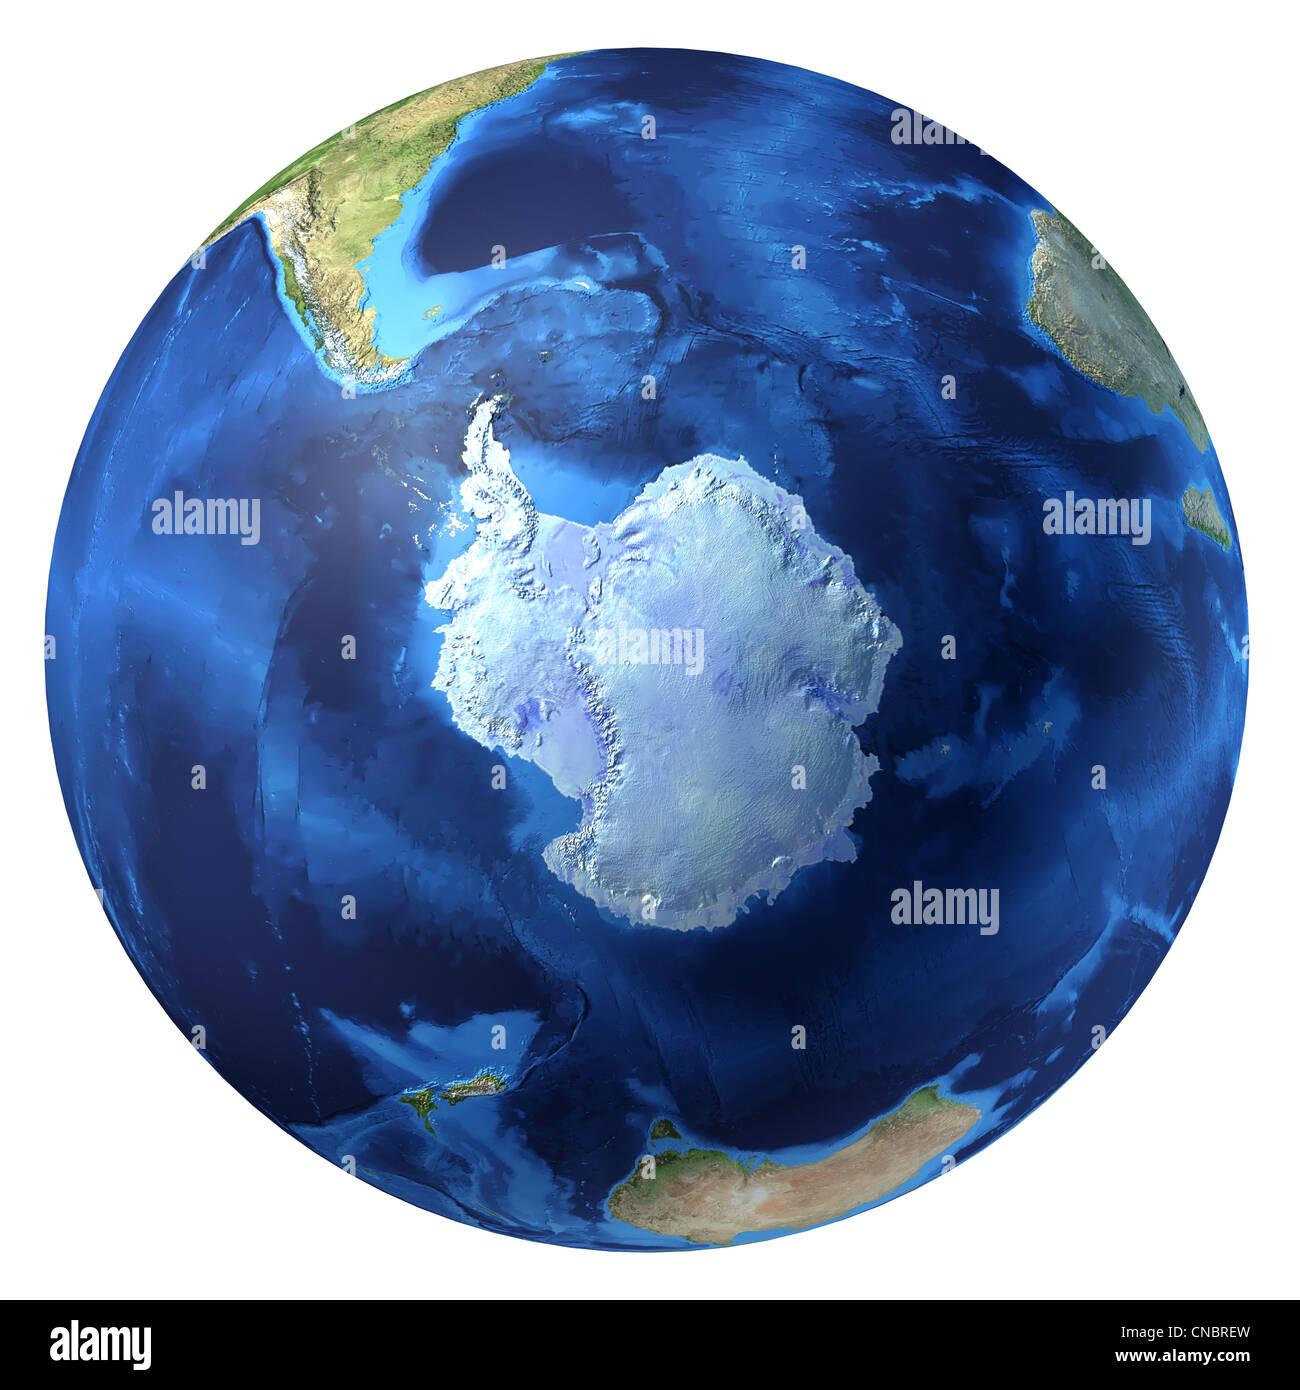 Earth globe, realistic 3 D rendering. Antarctic (south pole) view. On white background. With underwater ground reliefs. - Stock Image